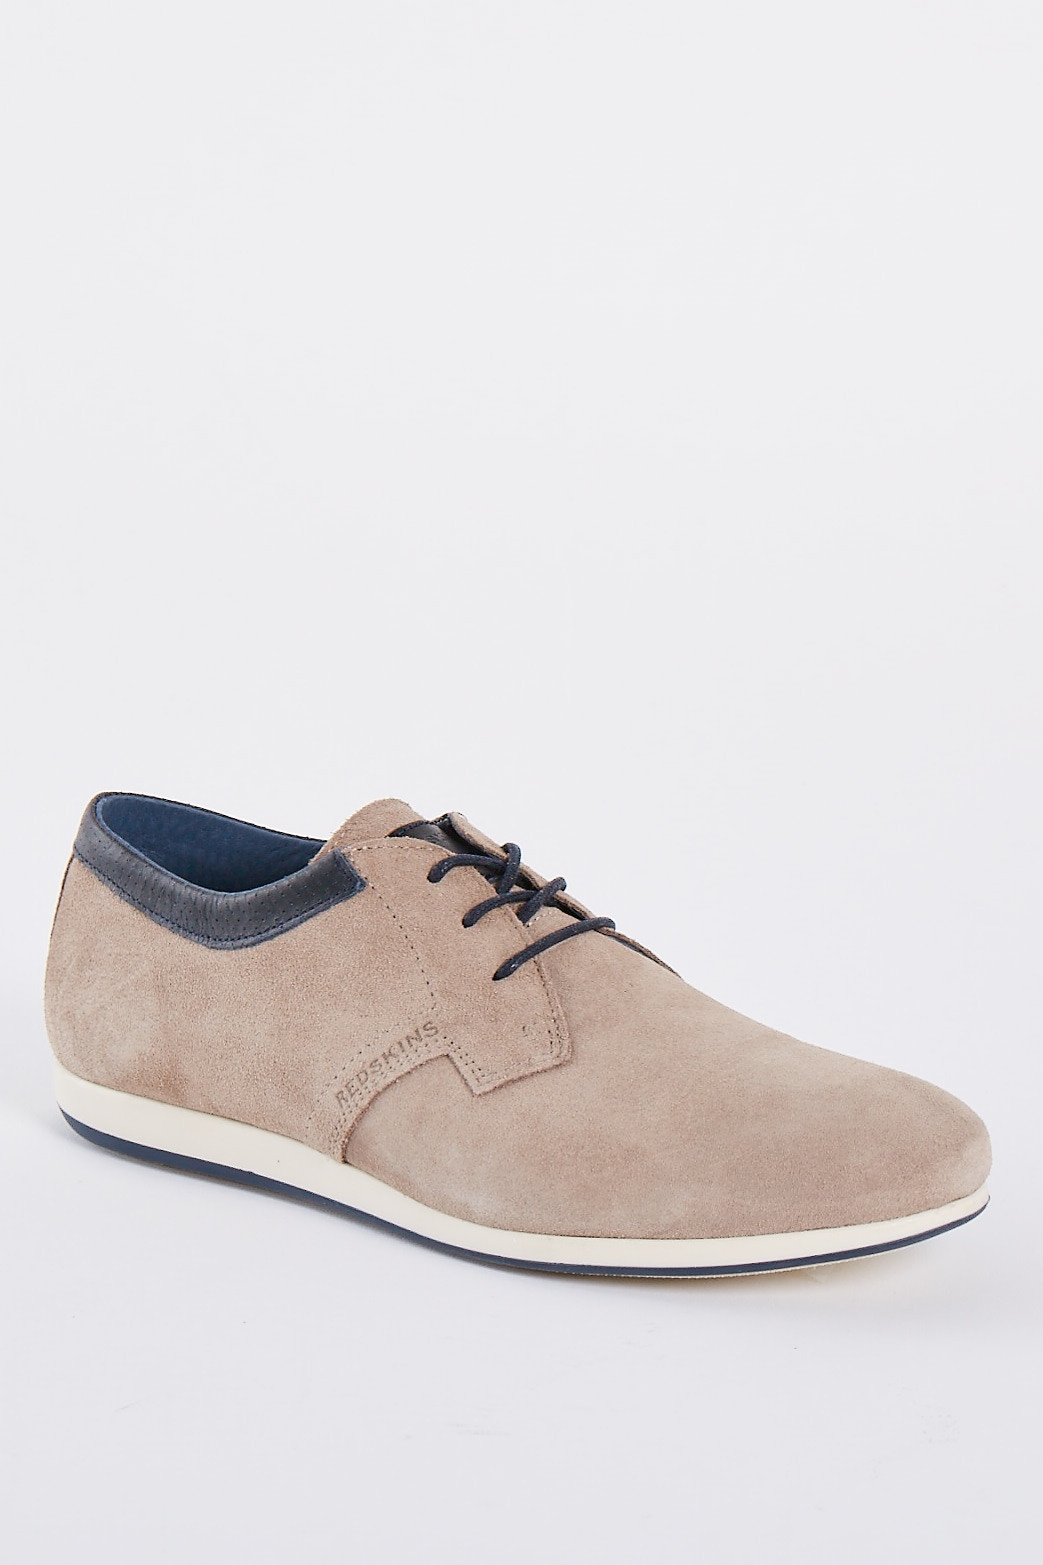 Chaussures Redskins Chaussures Woron pour homme